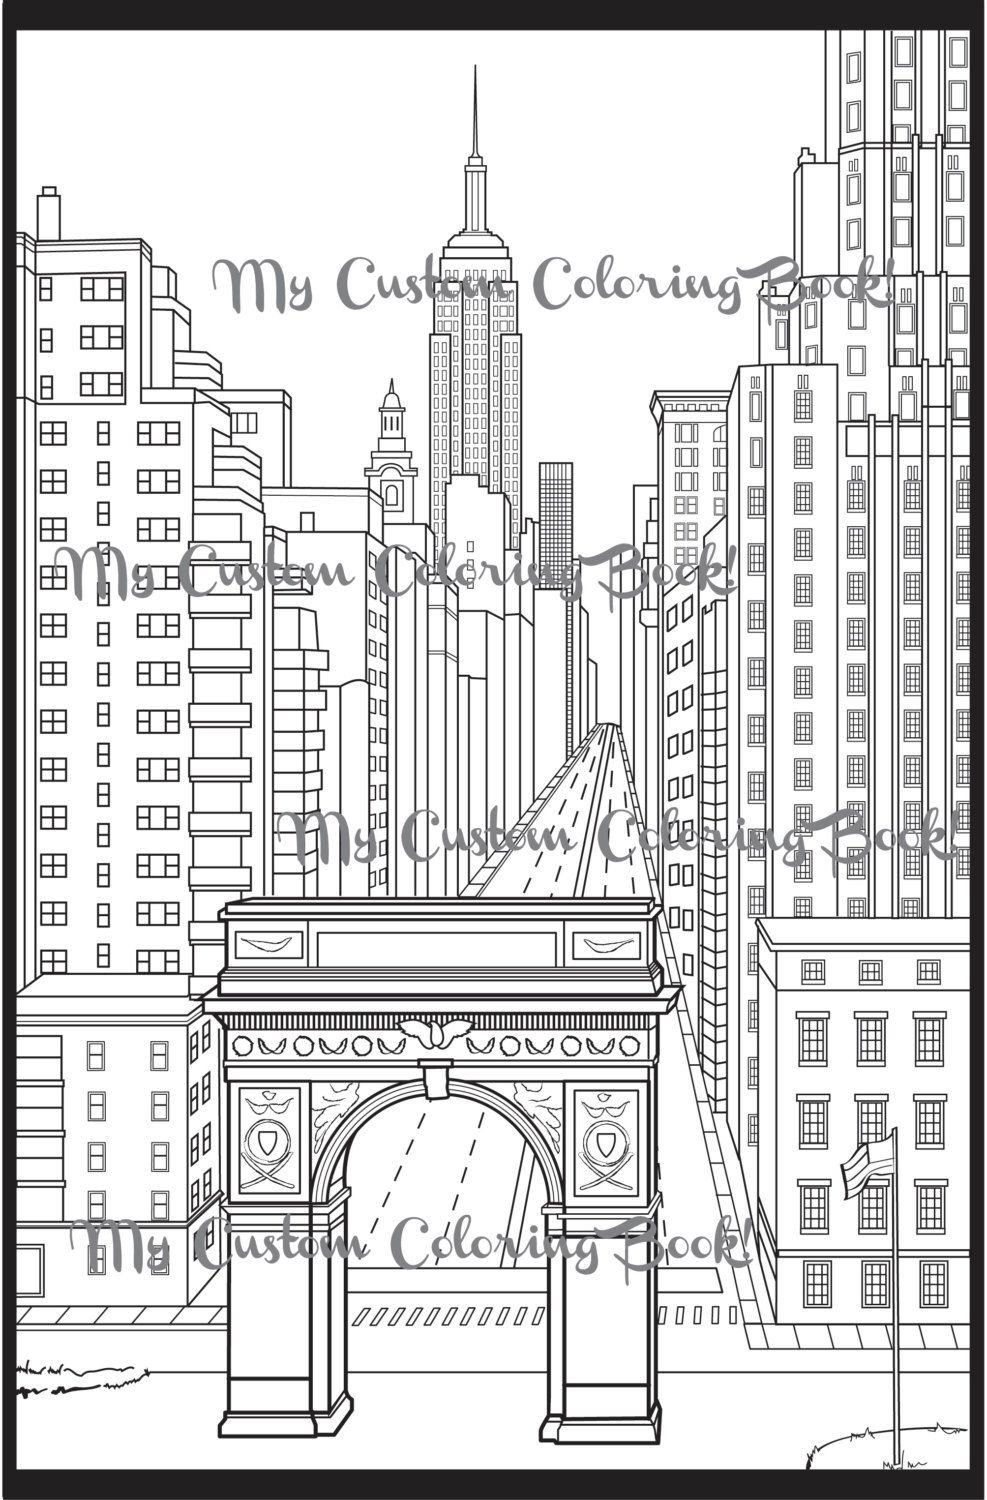 Pin by Helen Savage-Olsen on ColoringBookStyle | Pinterest ...